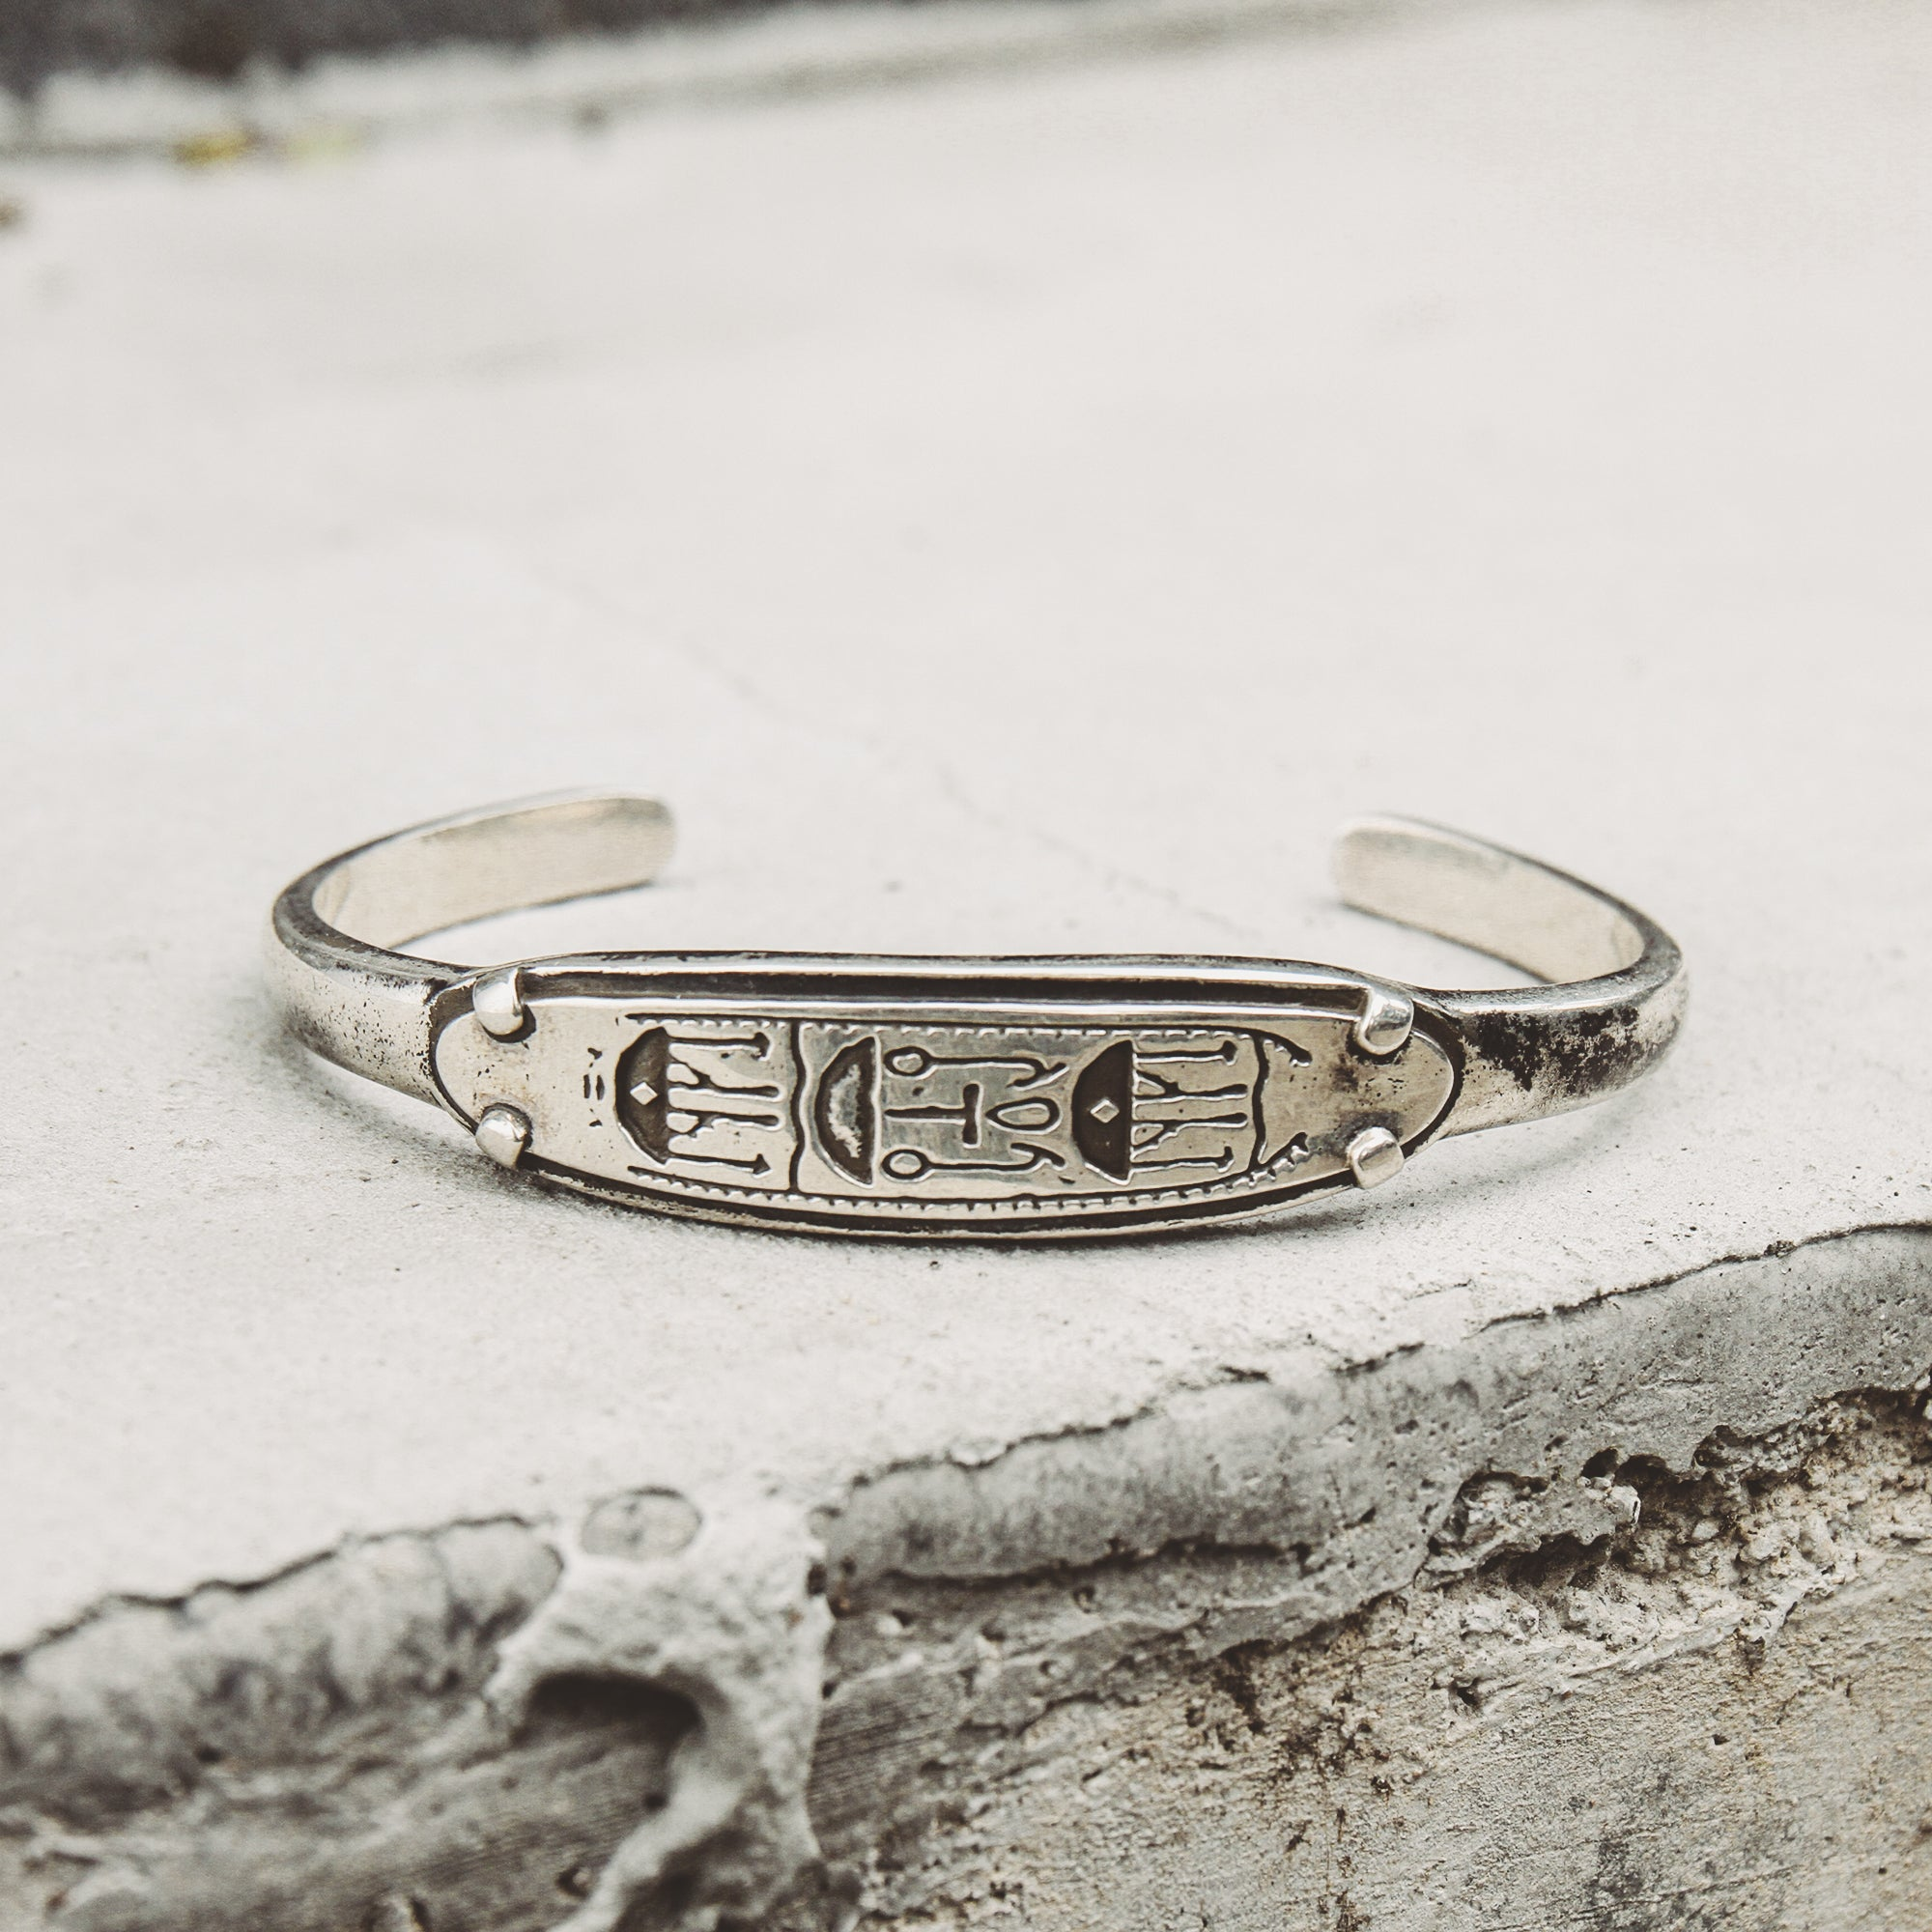 CHIEF | Silver Cuff Bracelet with Hieroglyphics